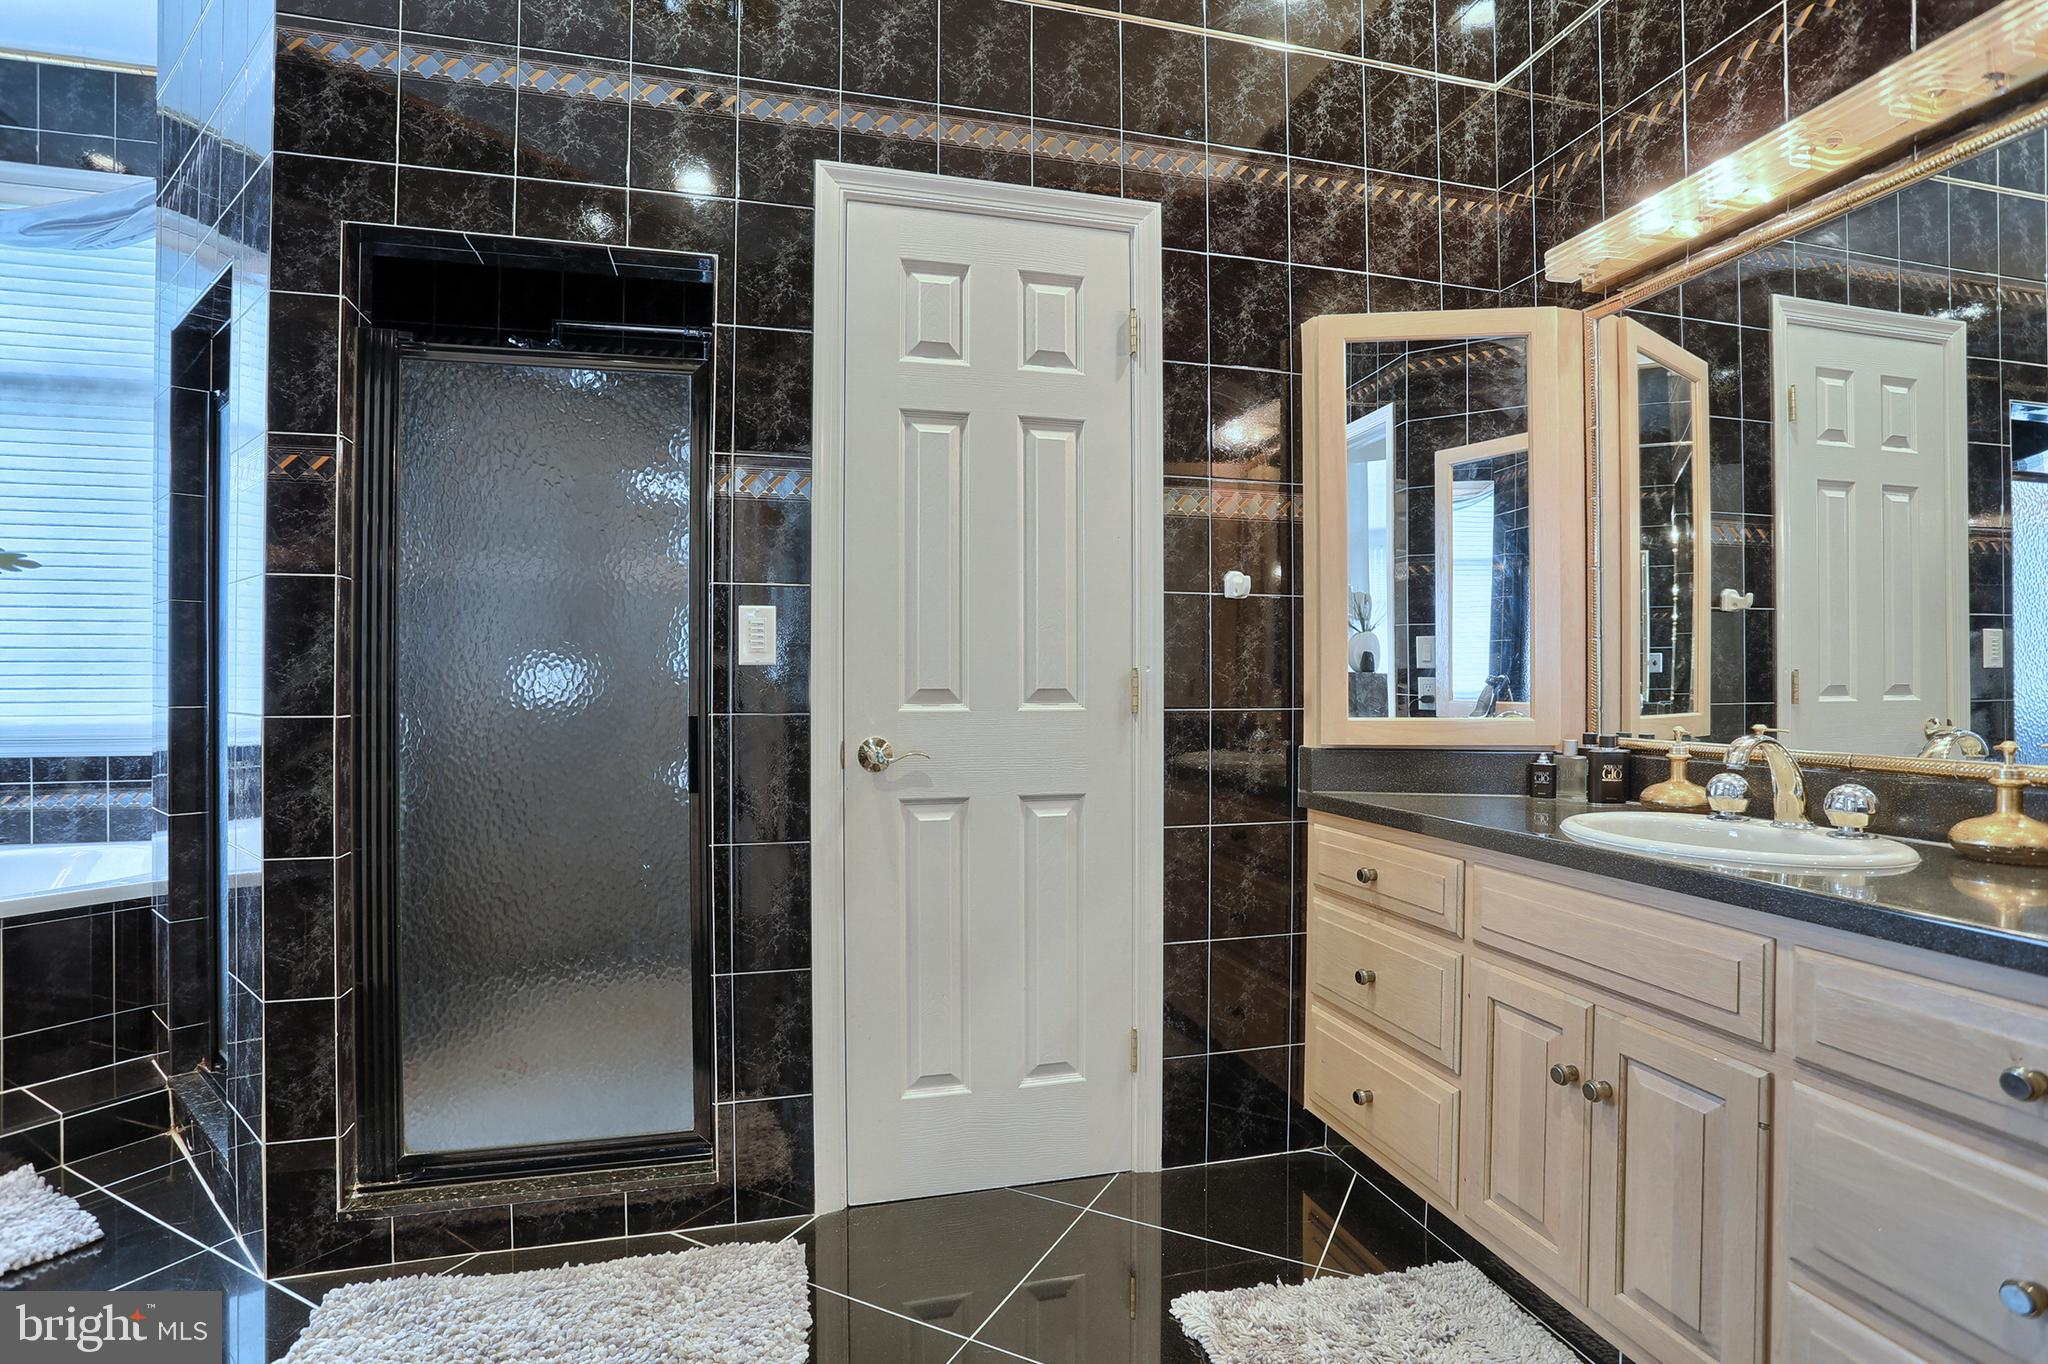 tile shower, 2 vanities, and private commode